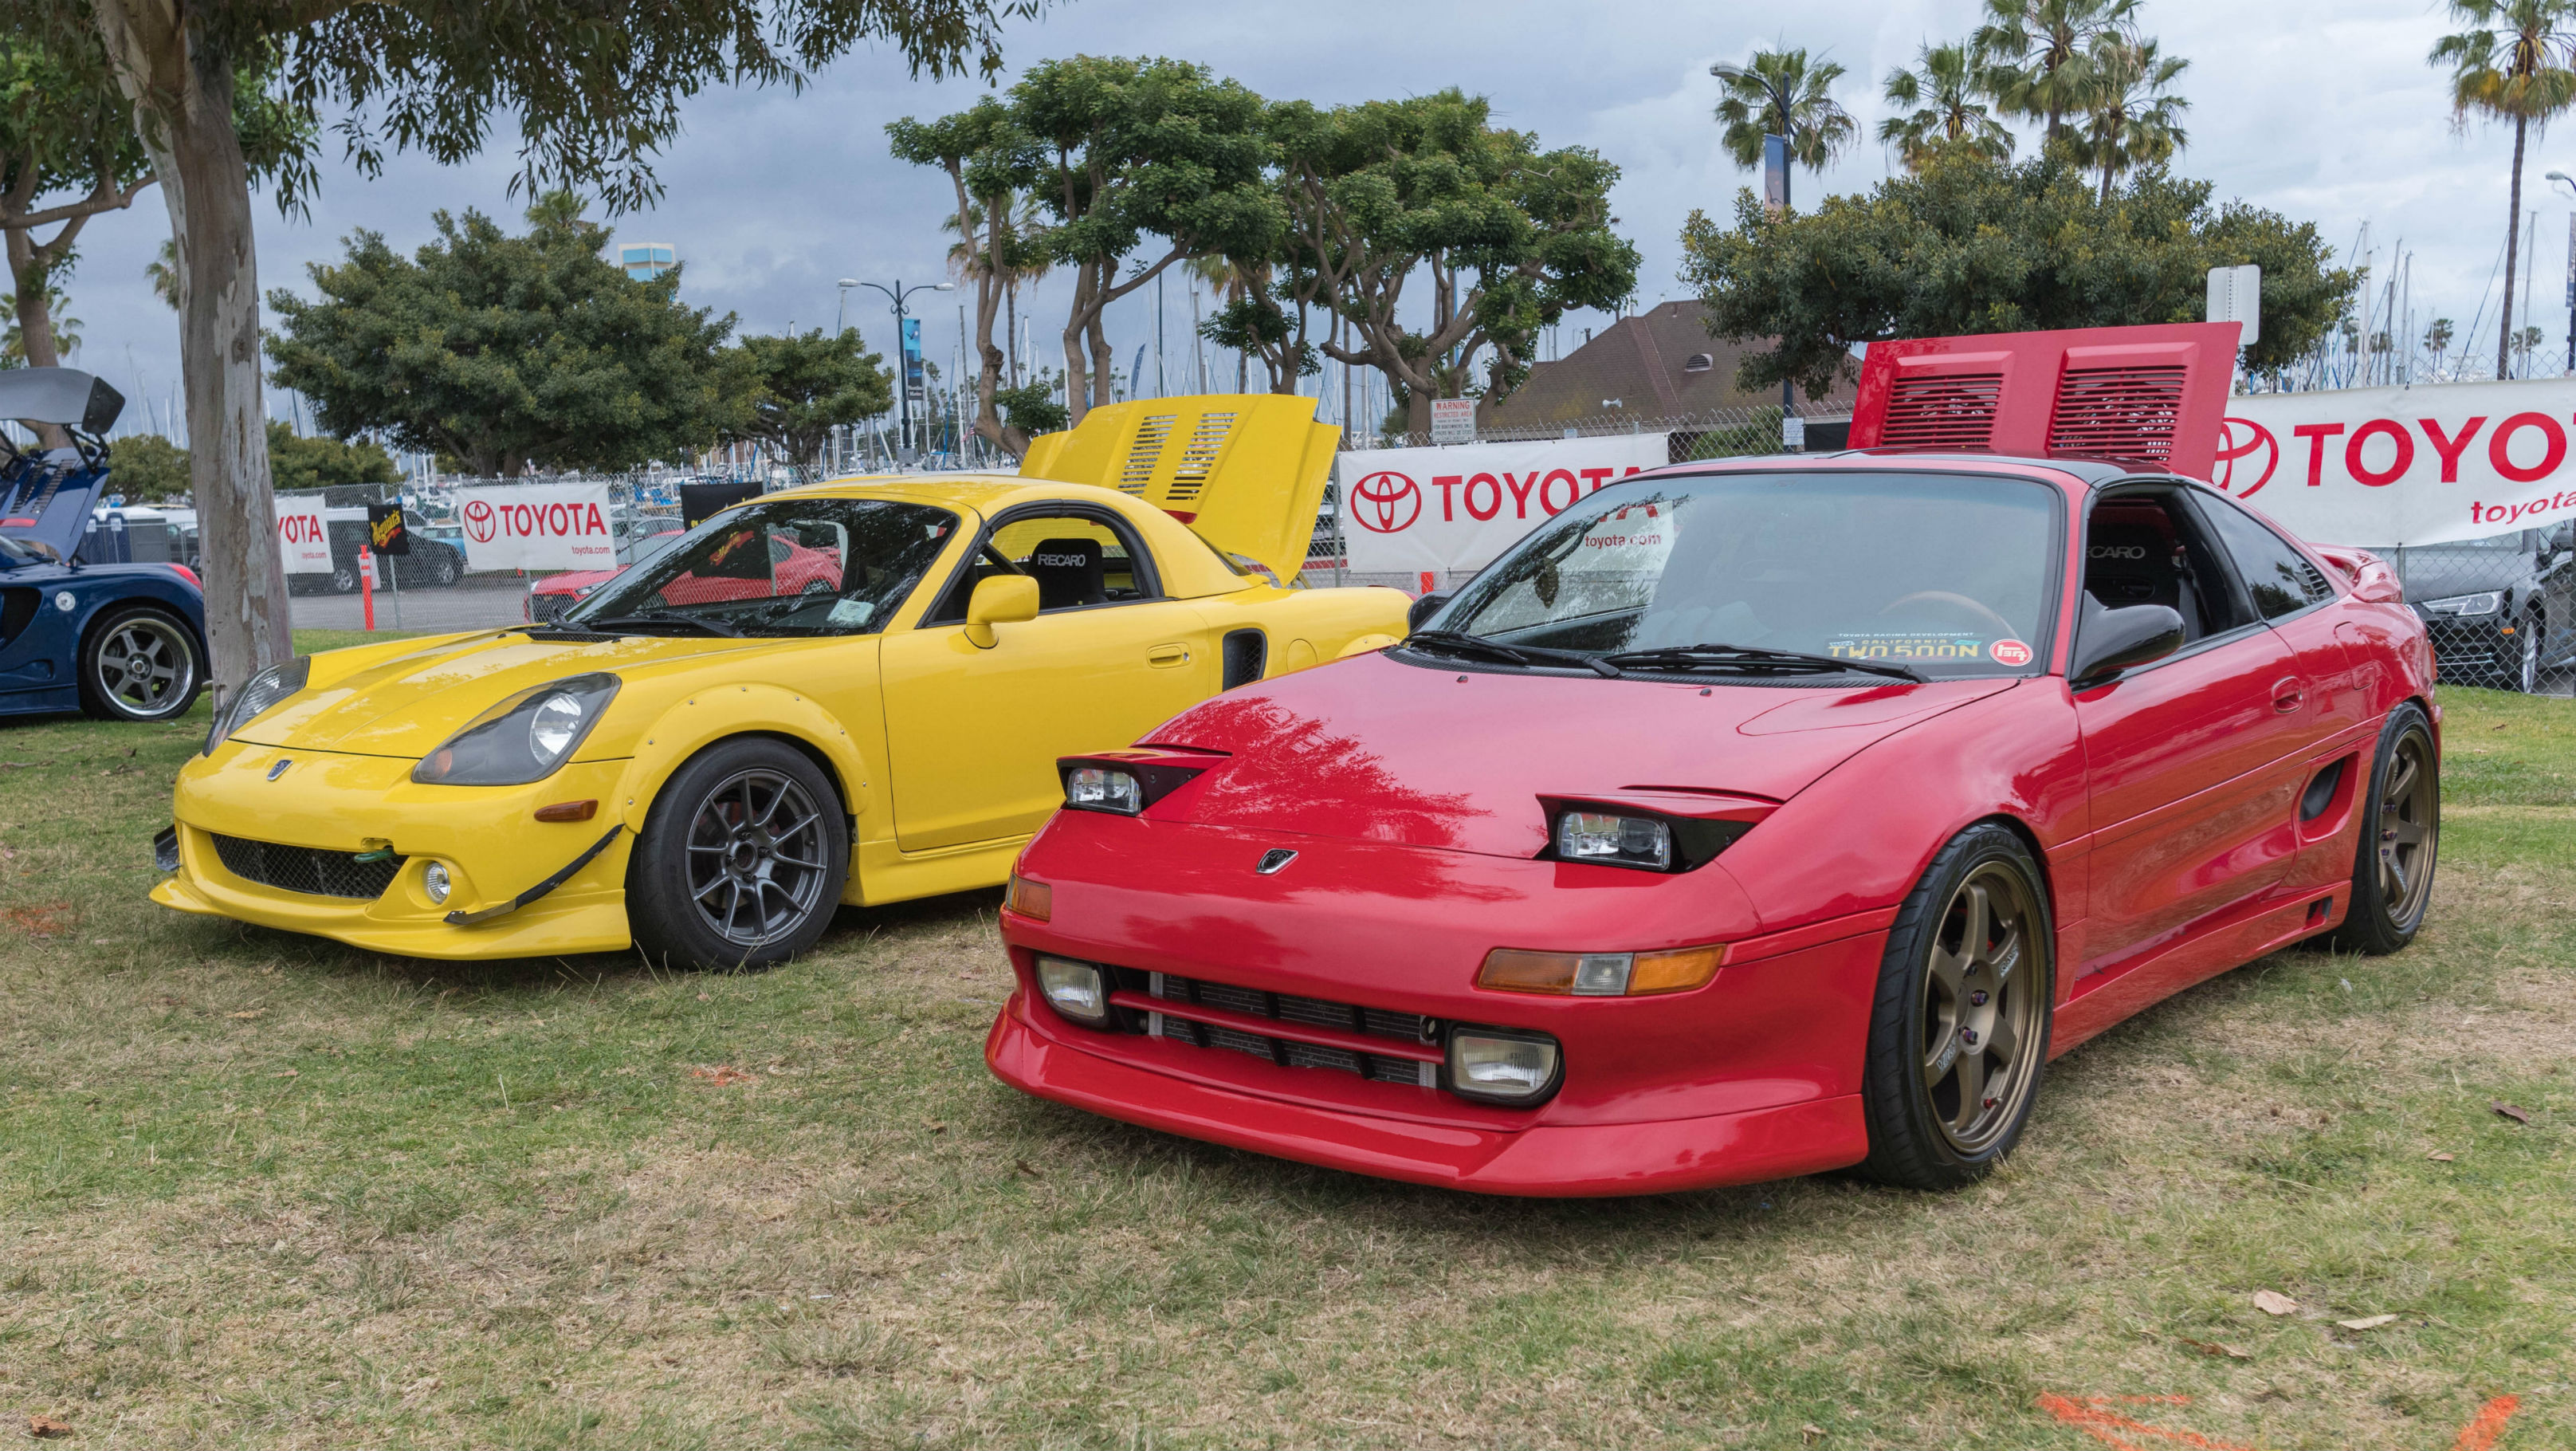 rumour mill could toyota really be planning the return of the mr2 wheels ca rumour mill could toyota really be